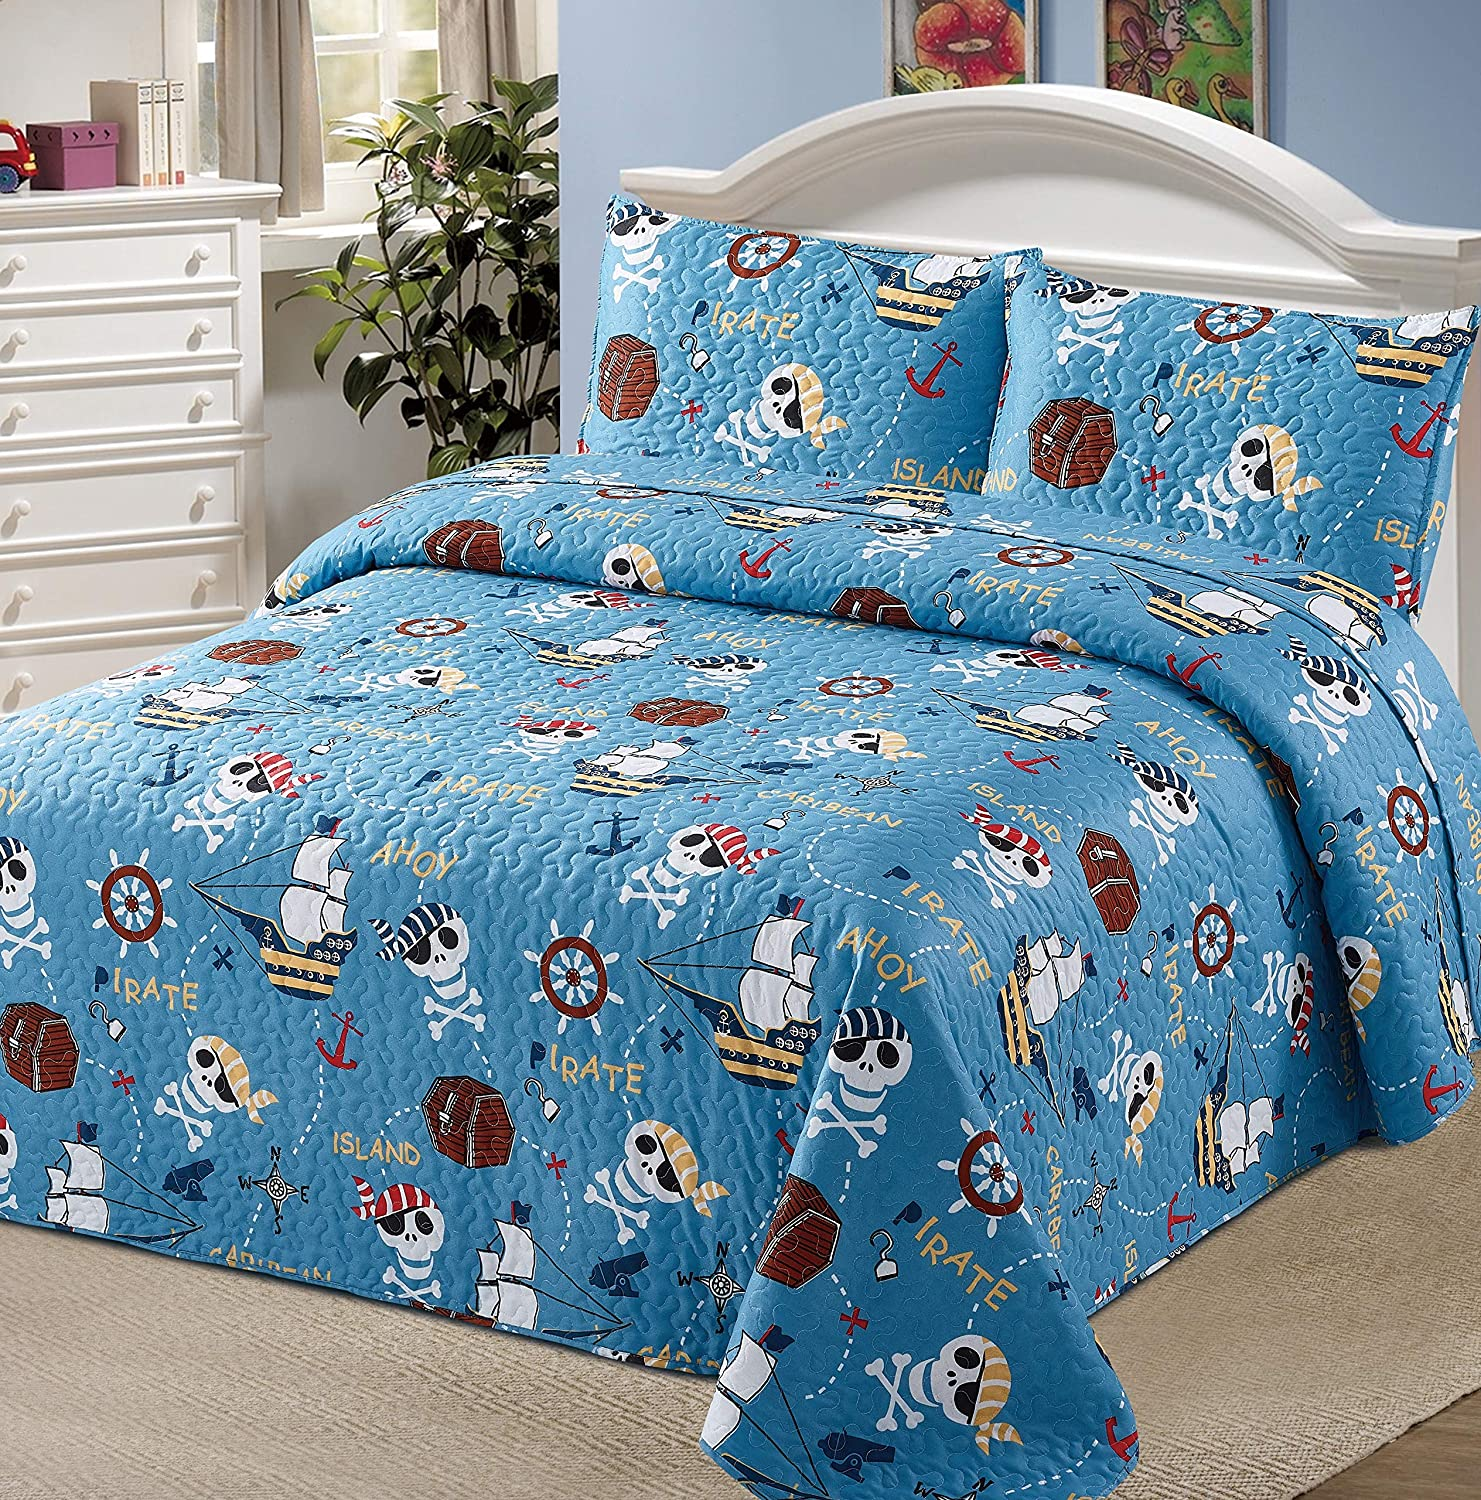 2pc Twin Bedspread Coverlet Quilt Set Kids/Teens Childrens Pirate Land Treasure Wood Box Skull Bones Ships Anchor Compass Treasure Island Hunting Blue White Brown Red New